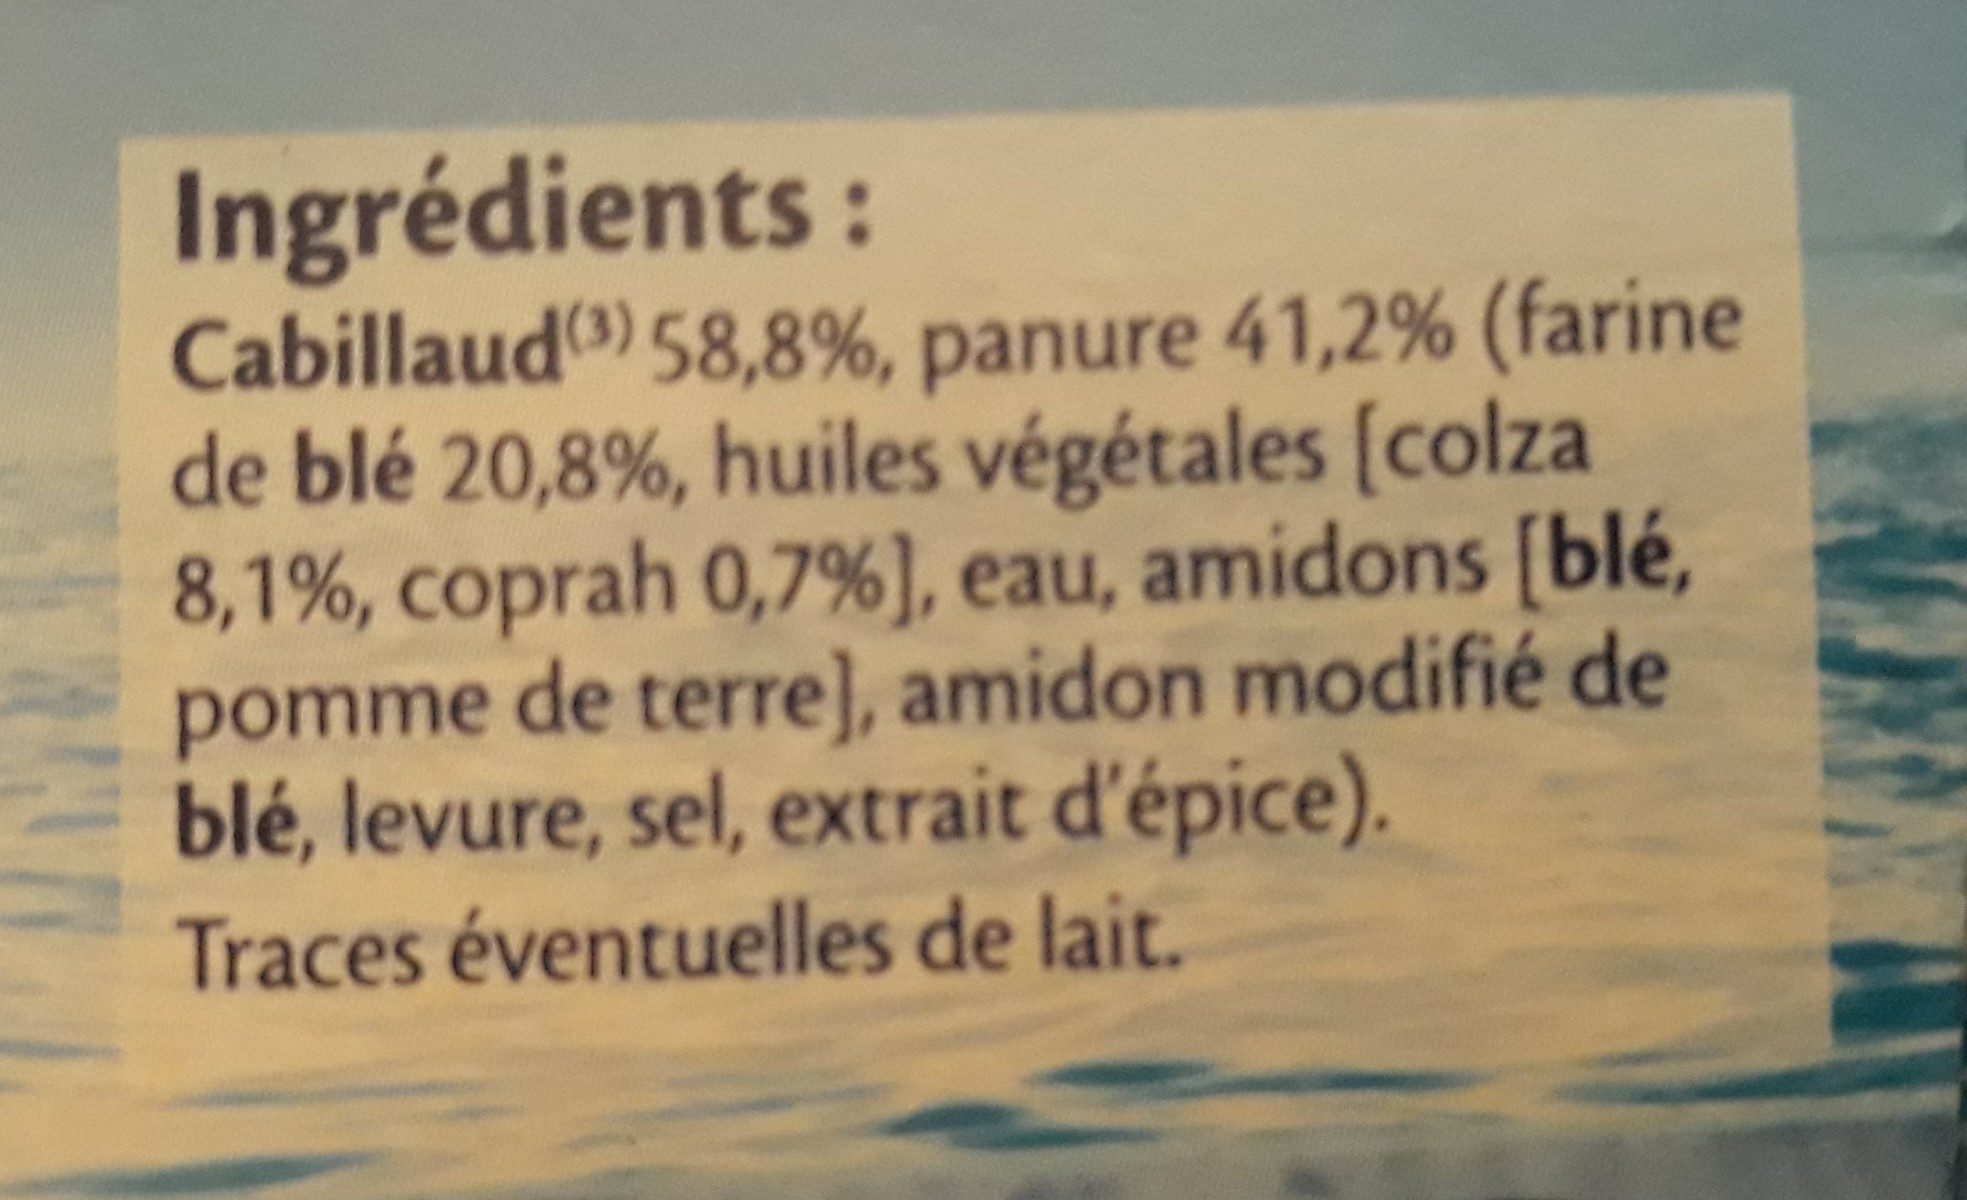 Qualité 100% Filet de Cabillaud x8 - Ingredients